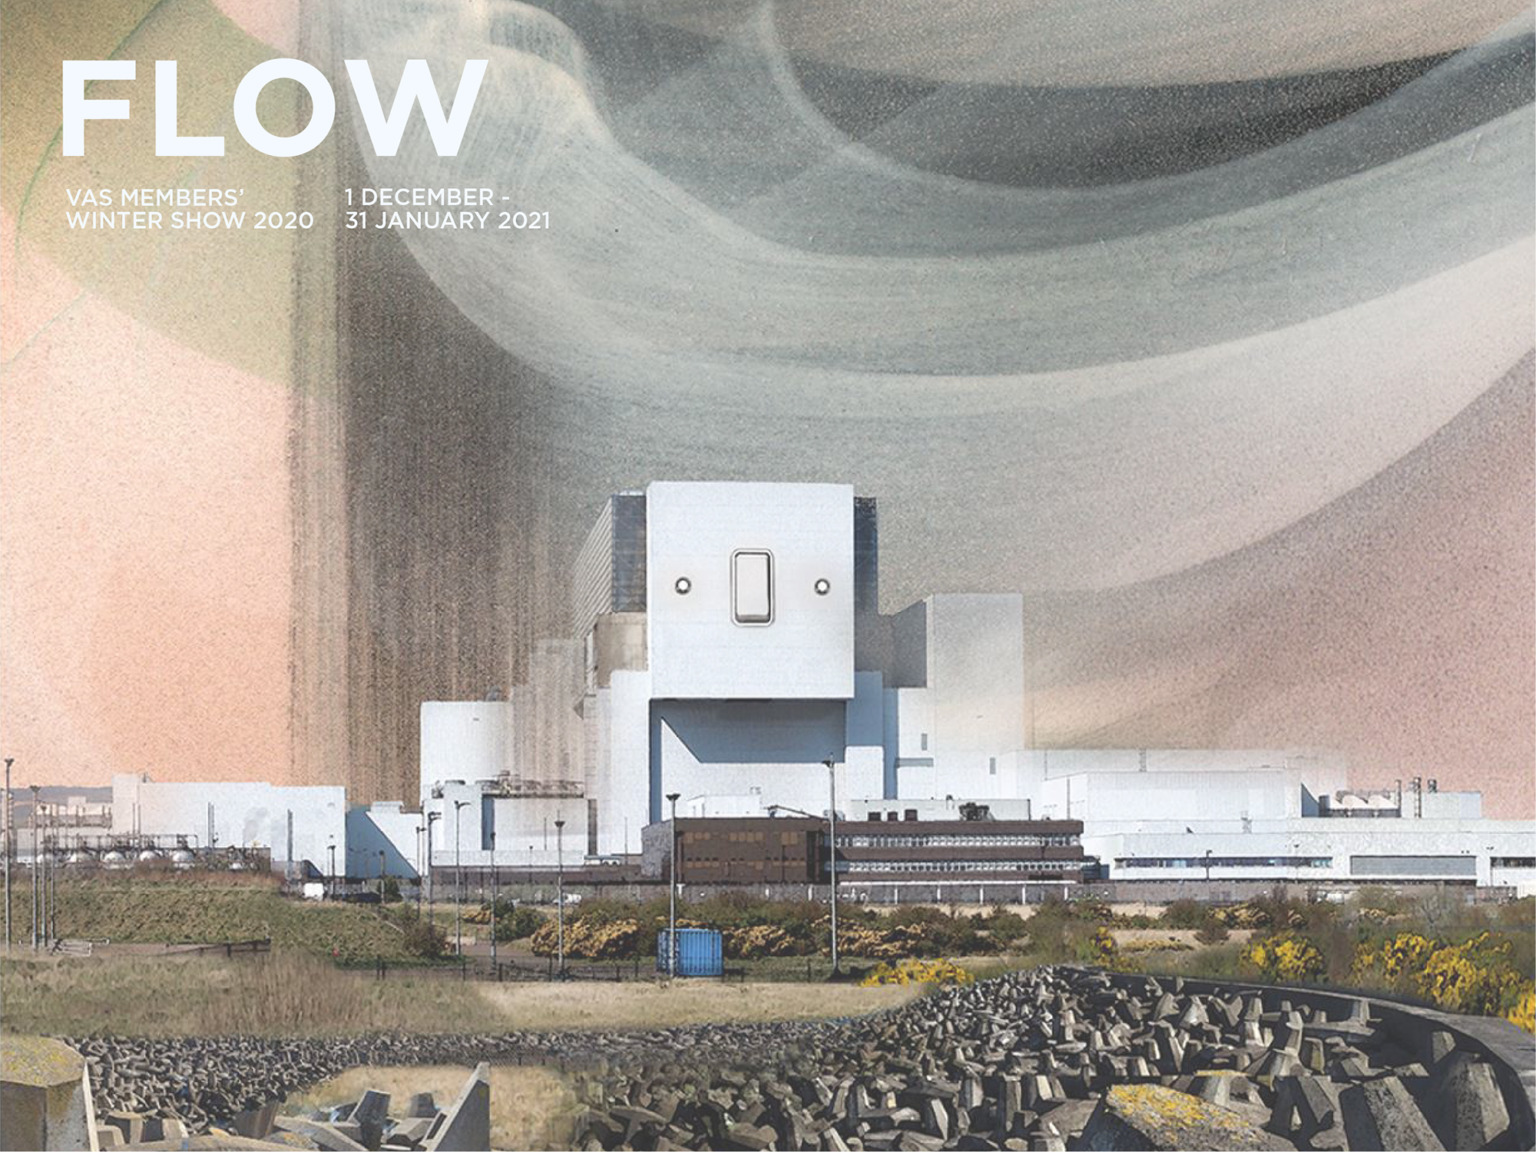 FLOW - VAS members' winter exhibition - Image credit: Esther Cohen 2020 – '10 years until decommission' Design by Harry Martin